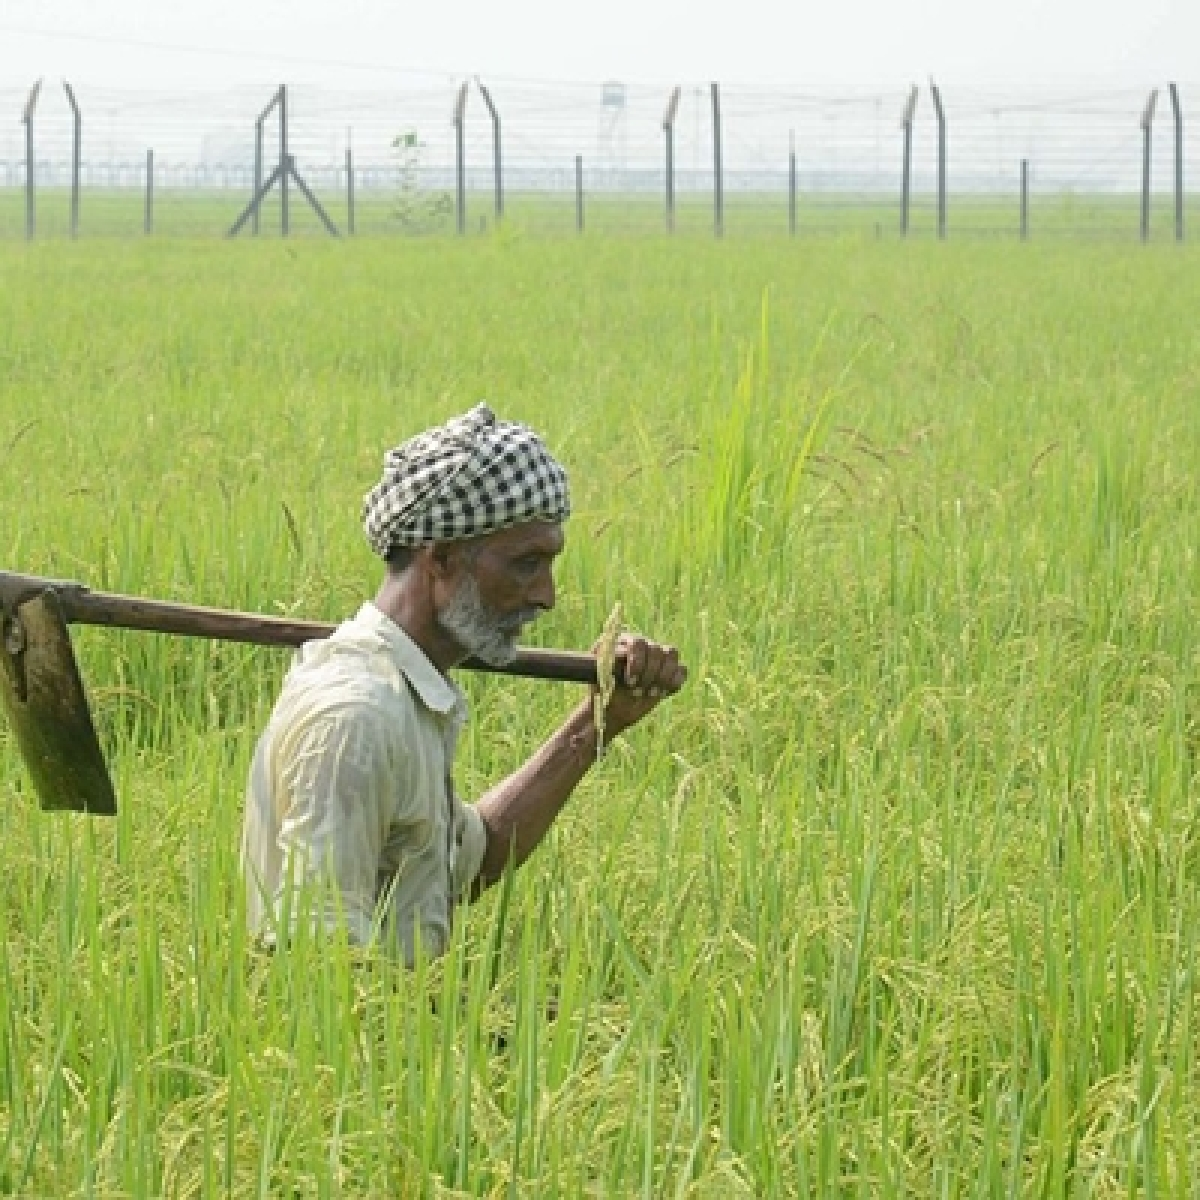 Modi government seeks to give boost to rural India, cabinet clears key decisions to benefit farmers, transform agriculture